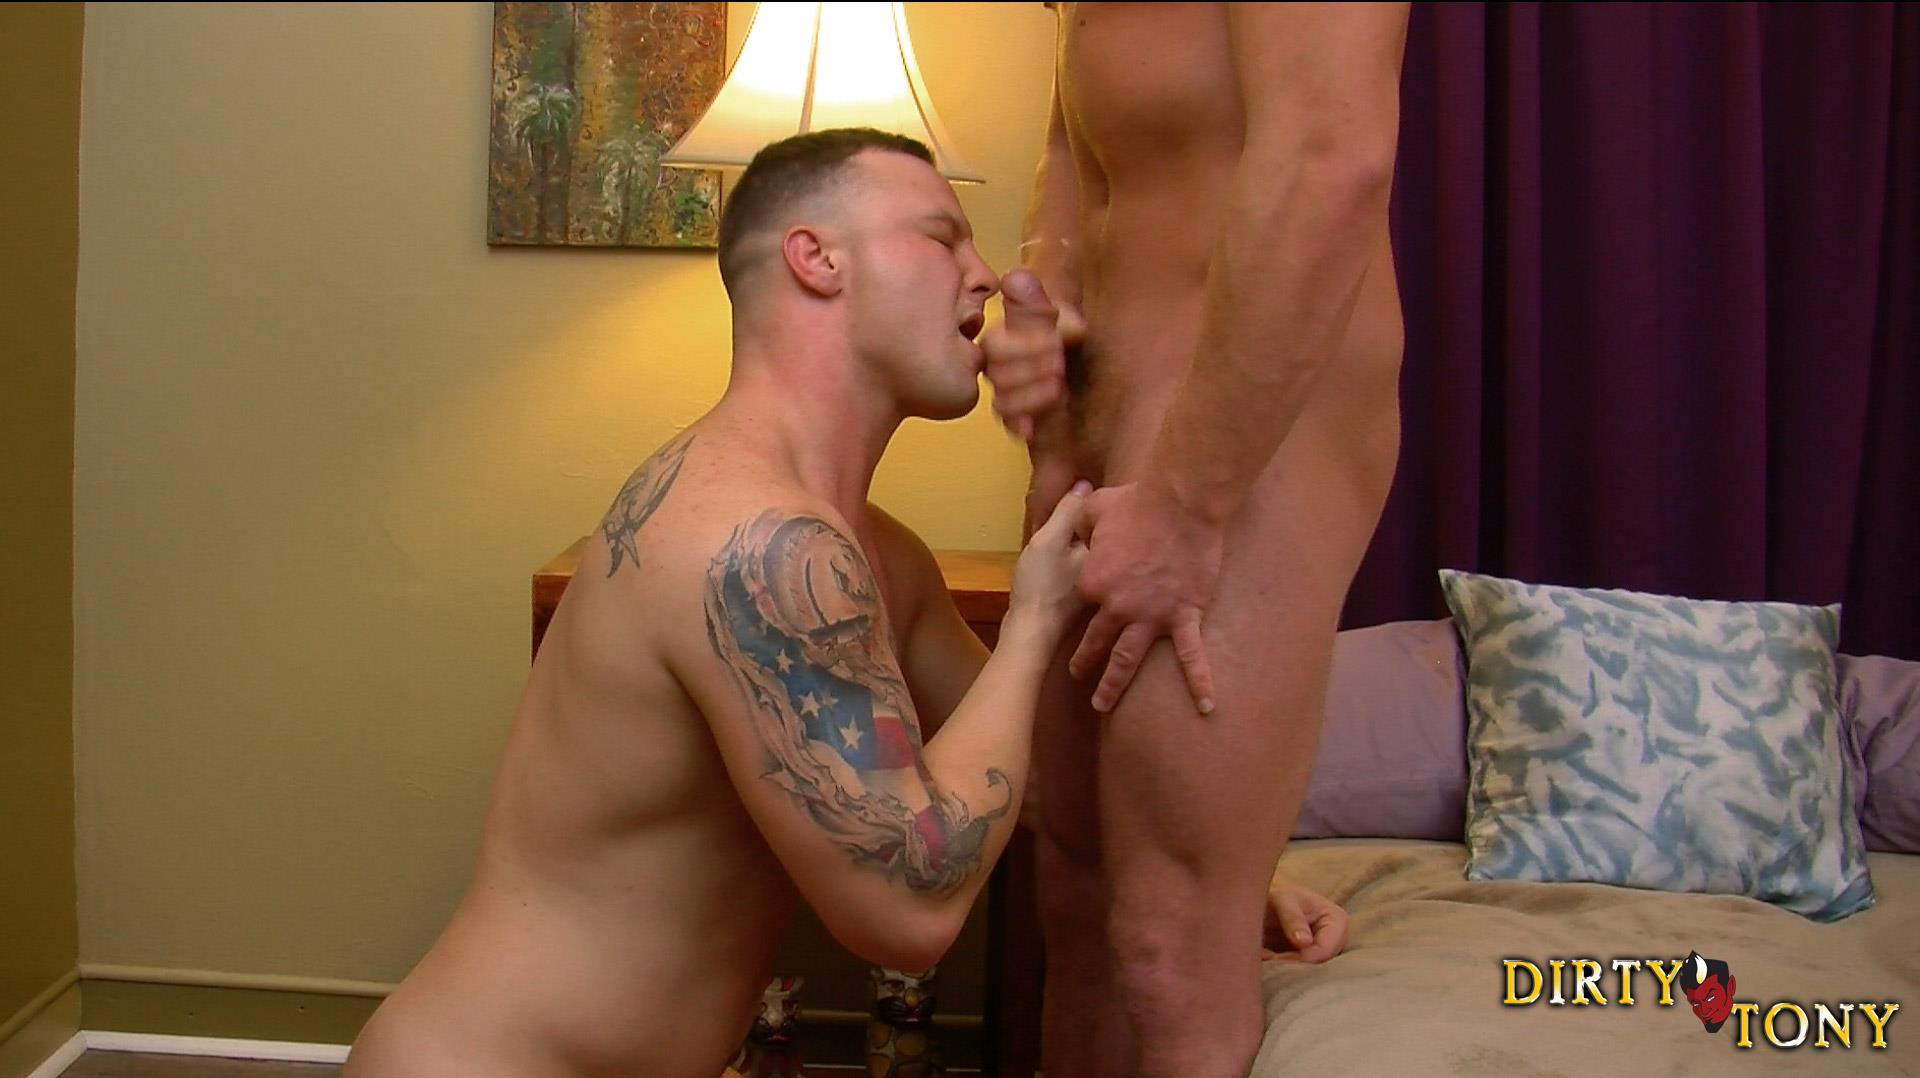 Dirty-Tony-Logan-Blake-and-Connor-Maguire-Marine-Getting-Fucked-In-the-Ass-Amateur-Gay-Porn-15 Former US Marine Takes A Big Uncut Cock Up The Ass